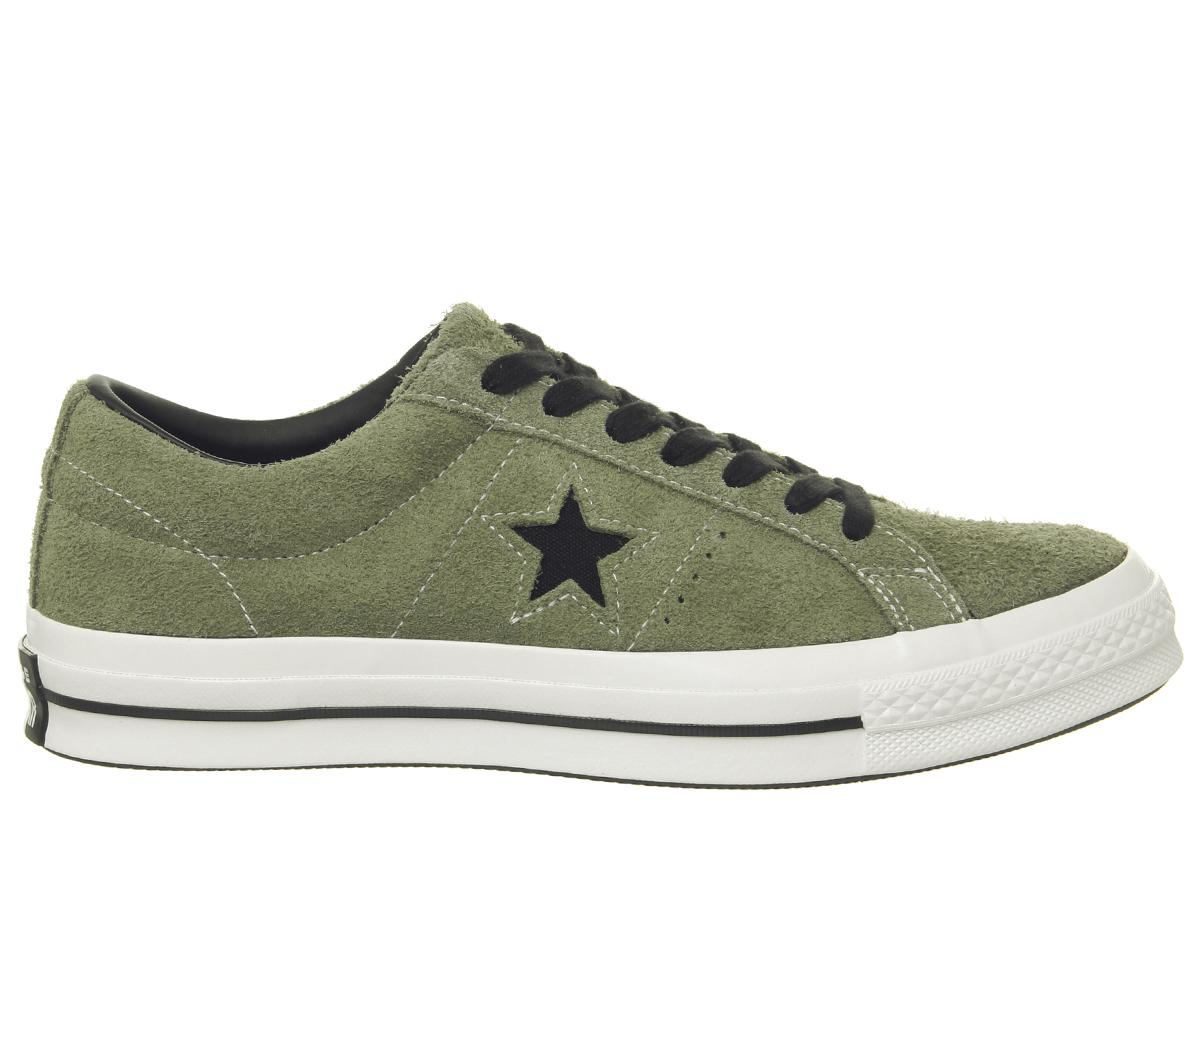 Converse Cons - One Star Pro OX Shoes - Black / White